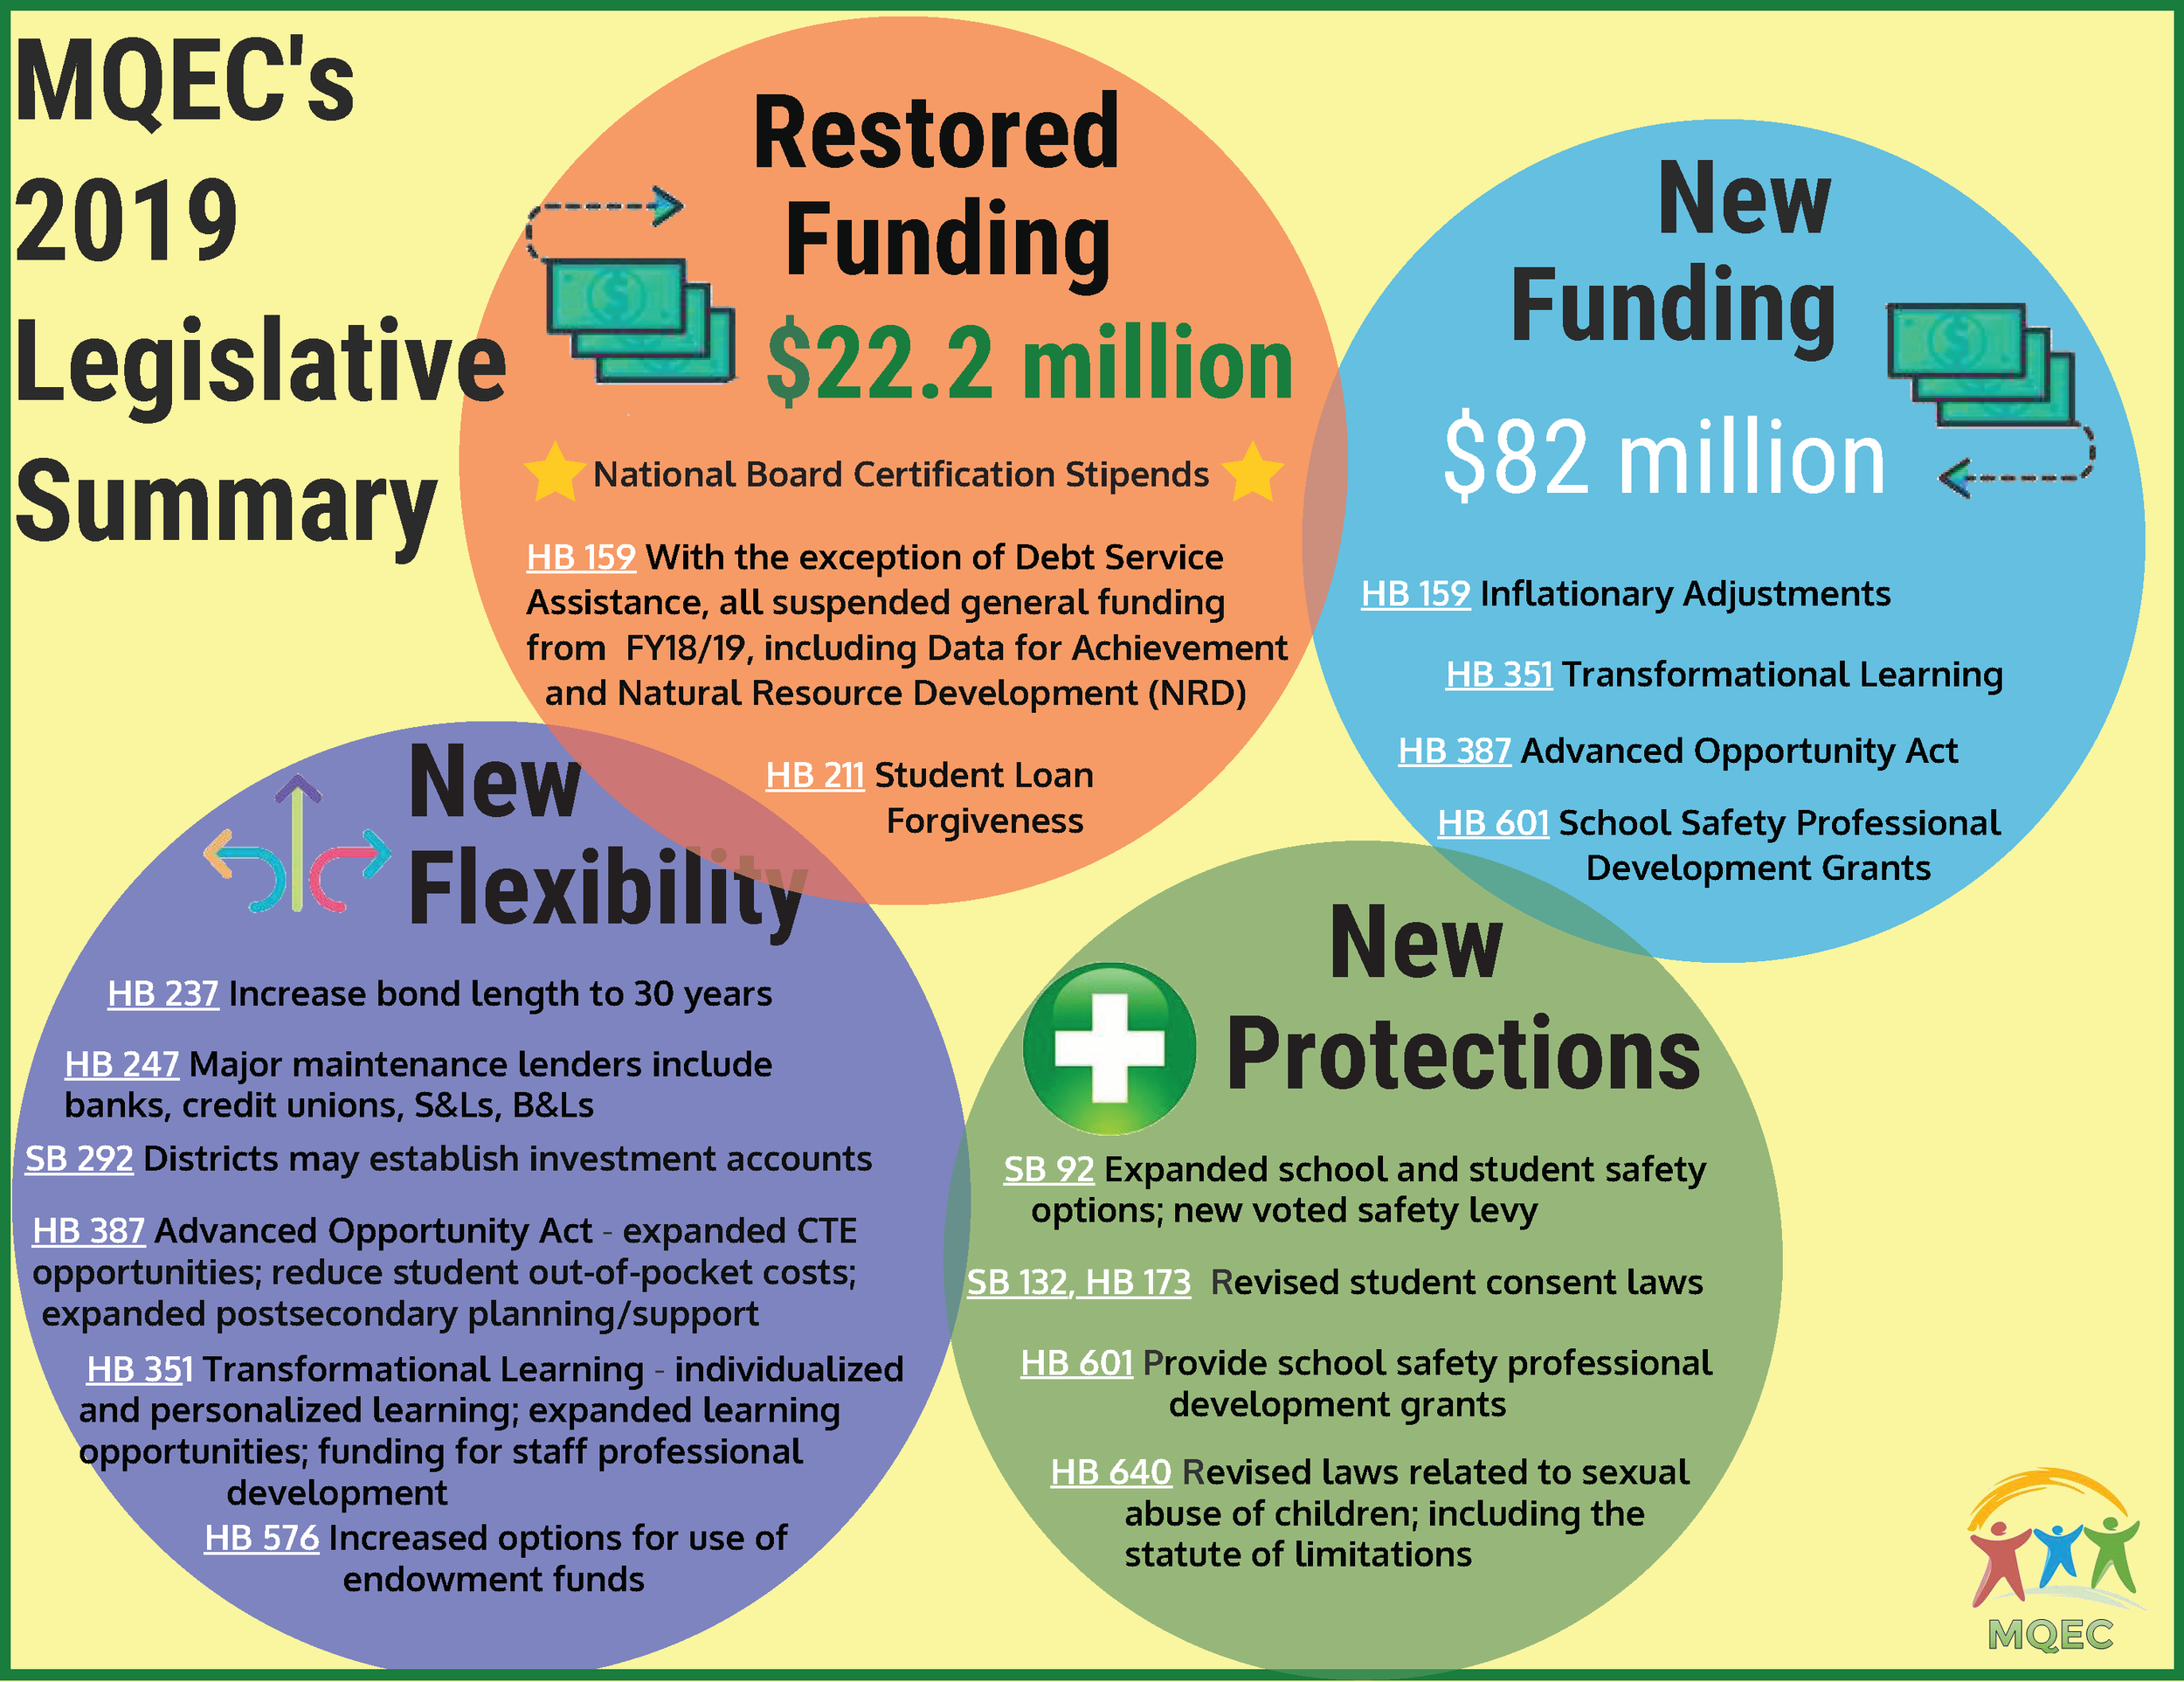 View the infographic summarizing MQEC's perspective of the 2019 legislative session.